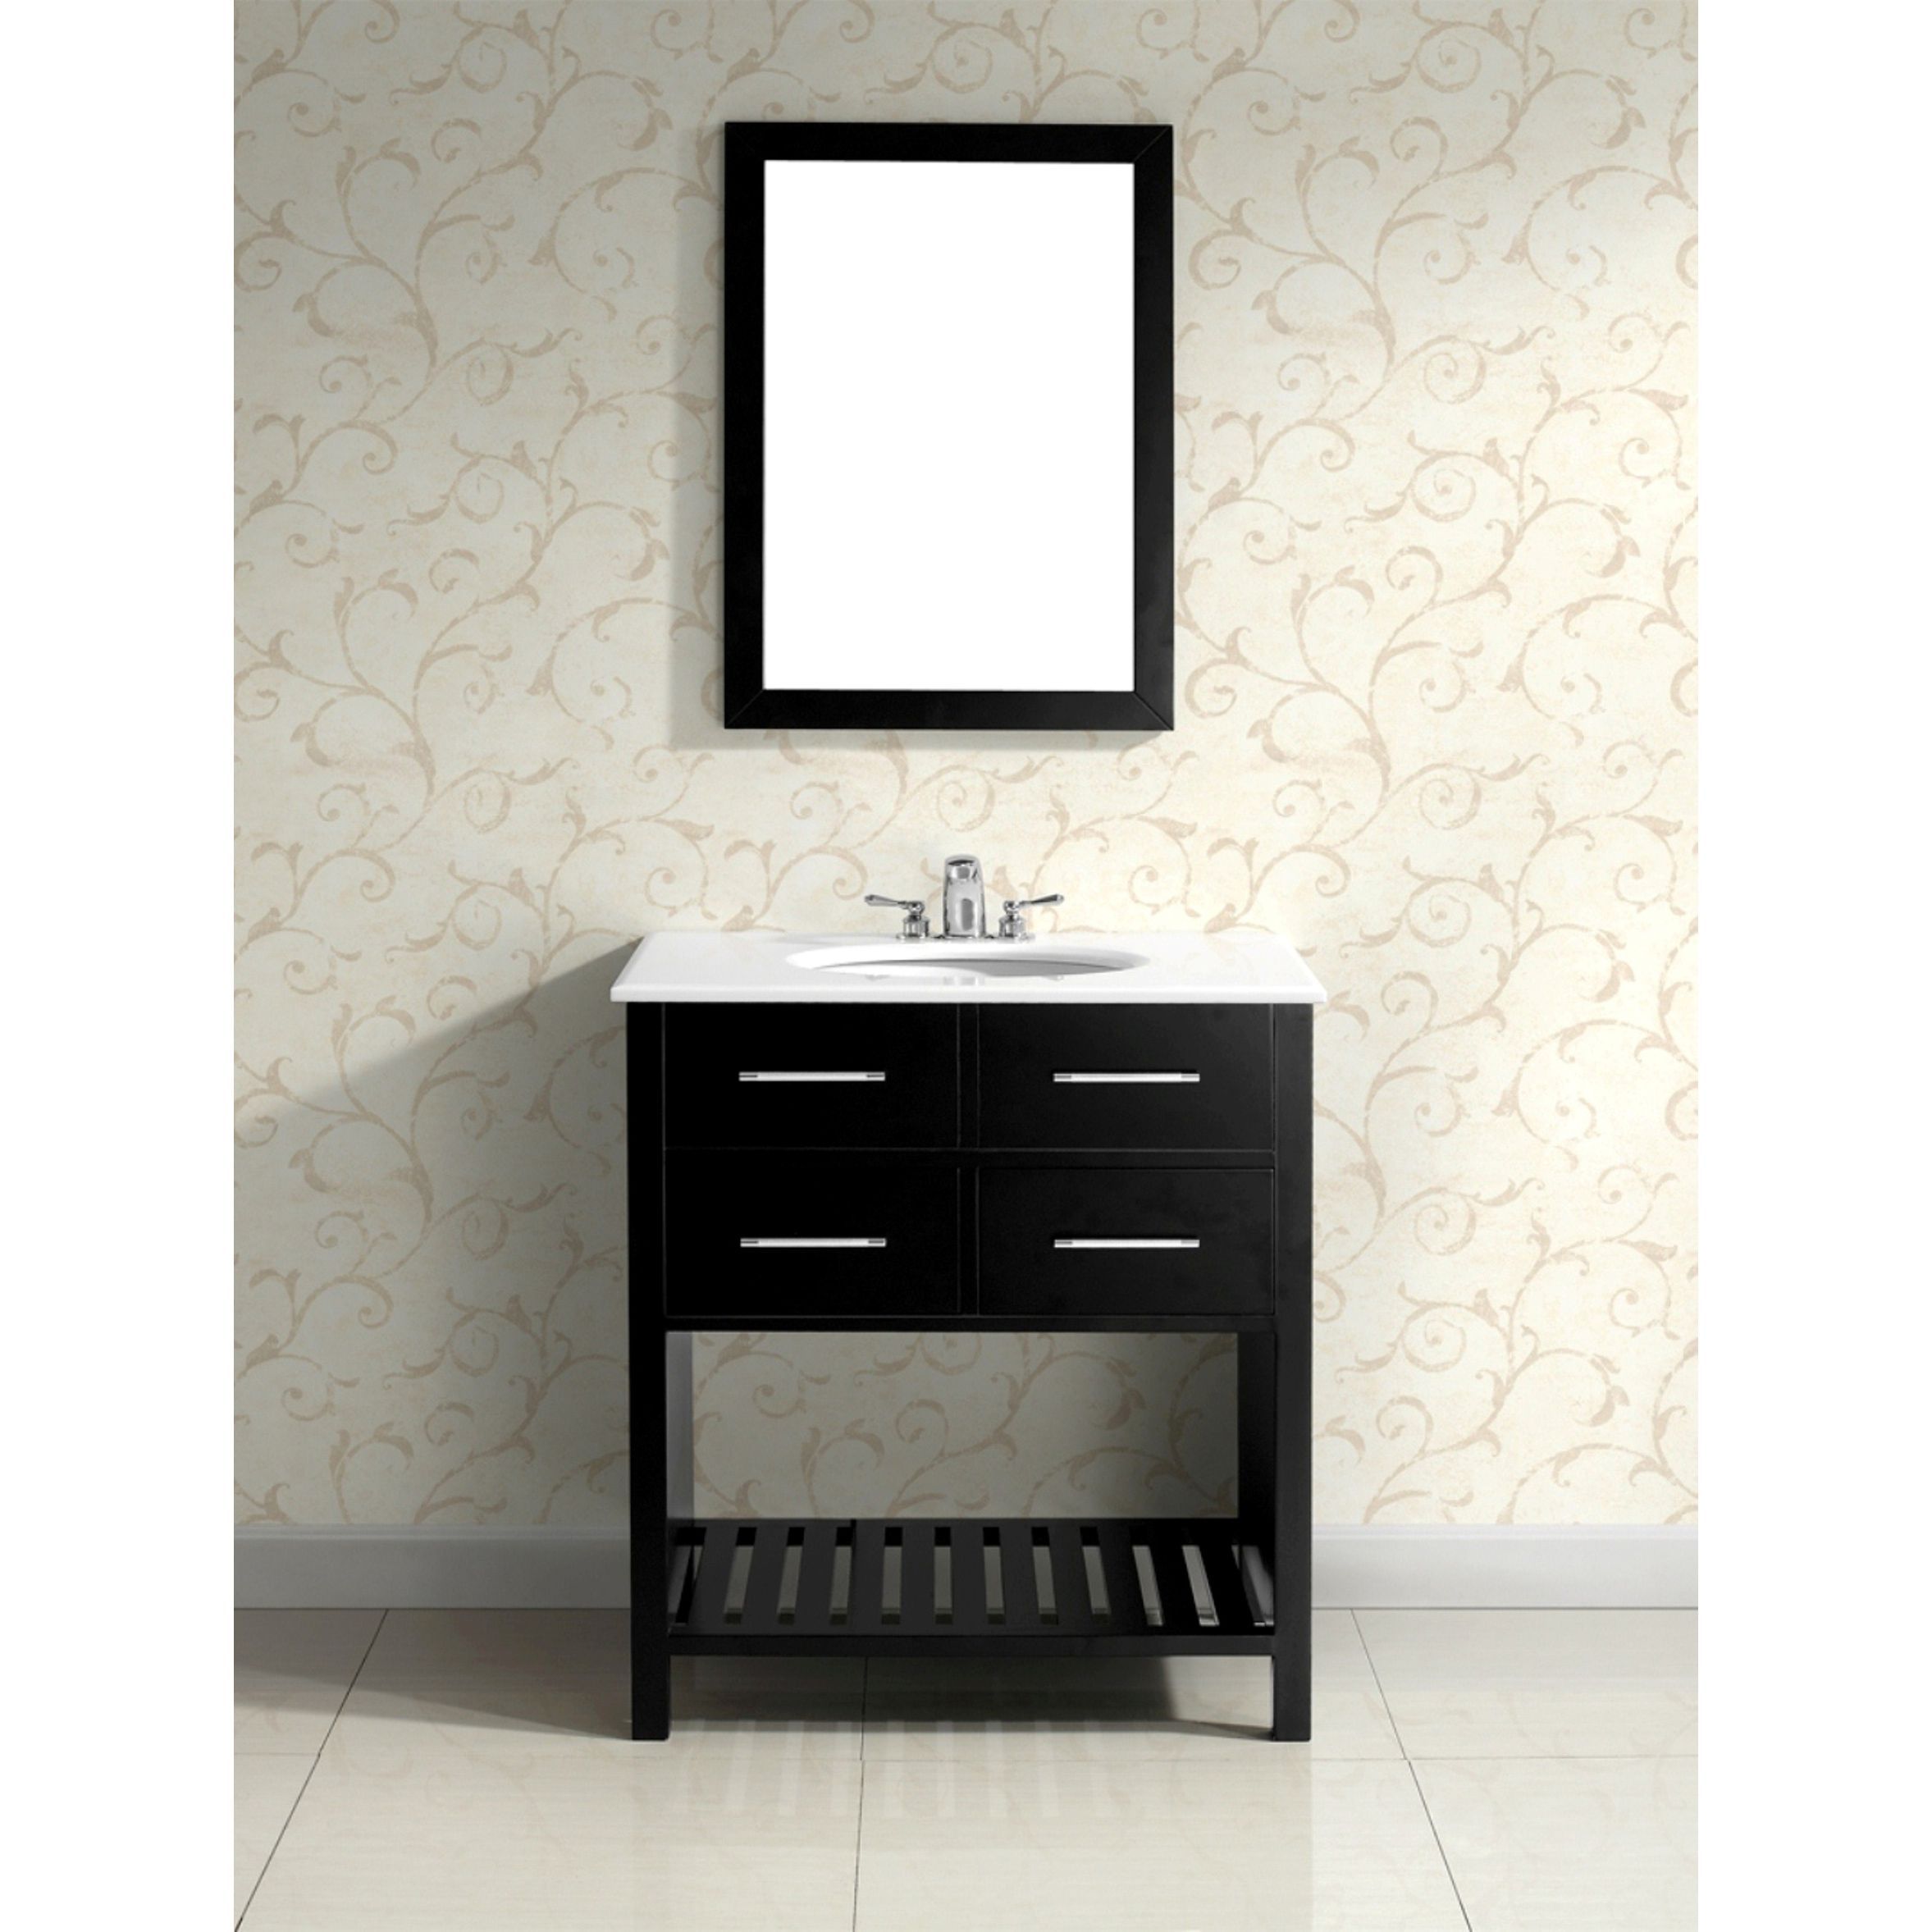 This 30-inch Manhattan Vanity is defined by its black finish, chrome pulls, clean lines and contemporary look. This attractive vanity offers plenty of storage in its two functional drawers and large open bottom shelf.